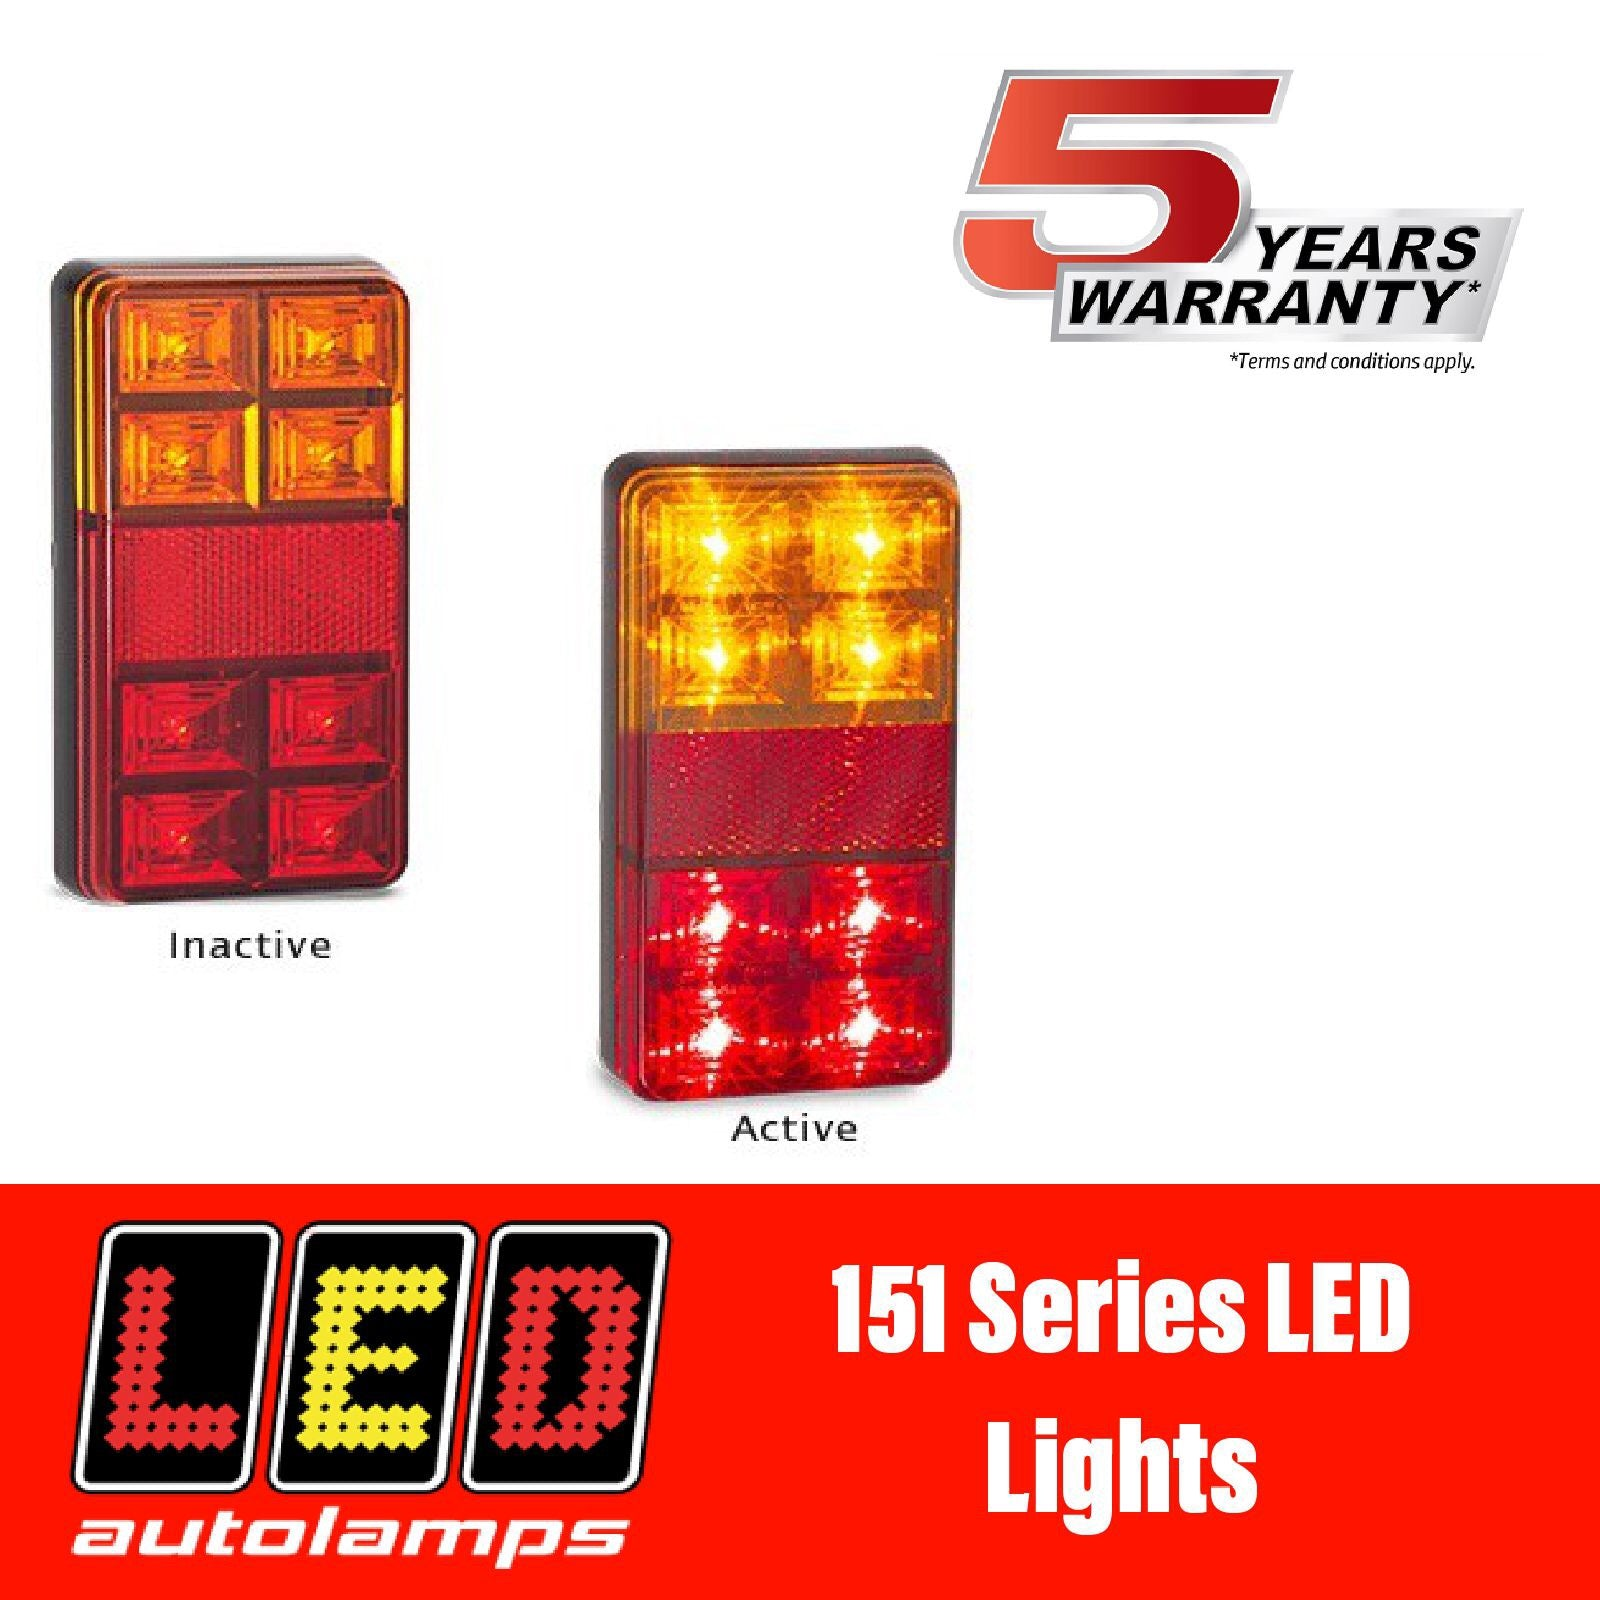 LED AUTOLAMPS 151 SERIES LED LIGHTS